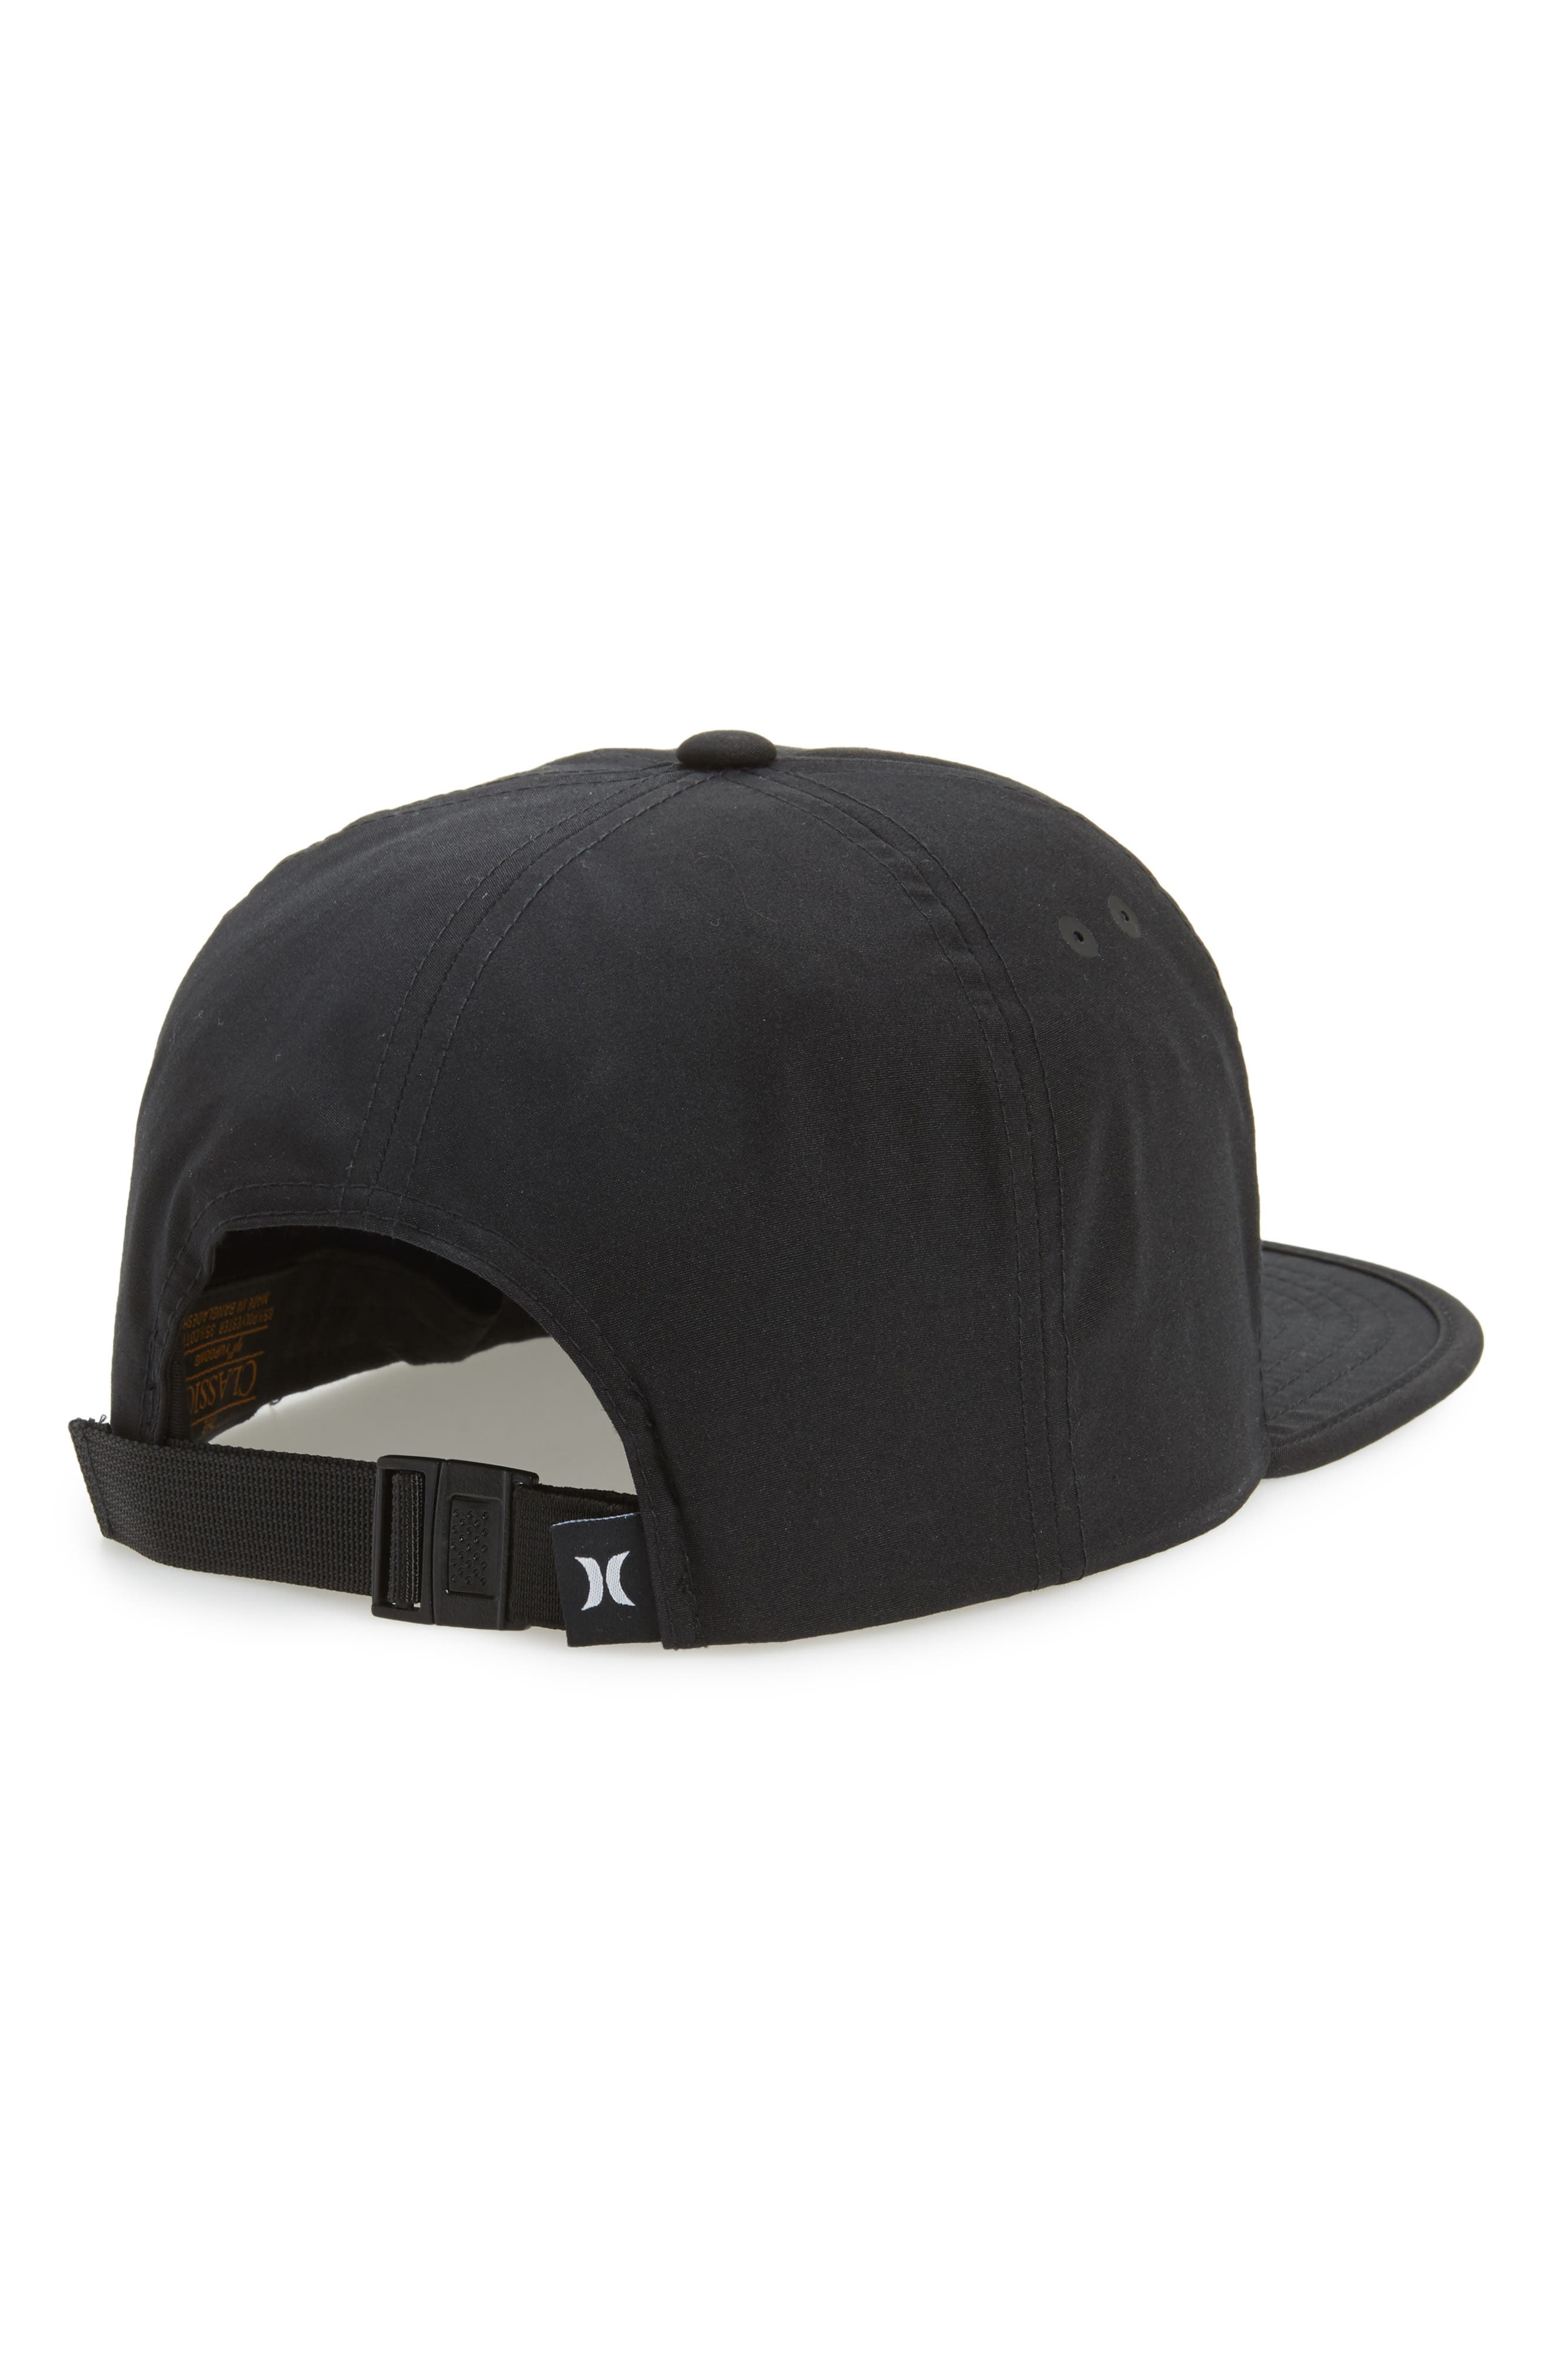 Alternate Image 2  - Hurley Pacific Hats Snapback Baseball Cap